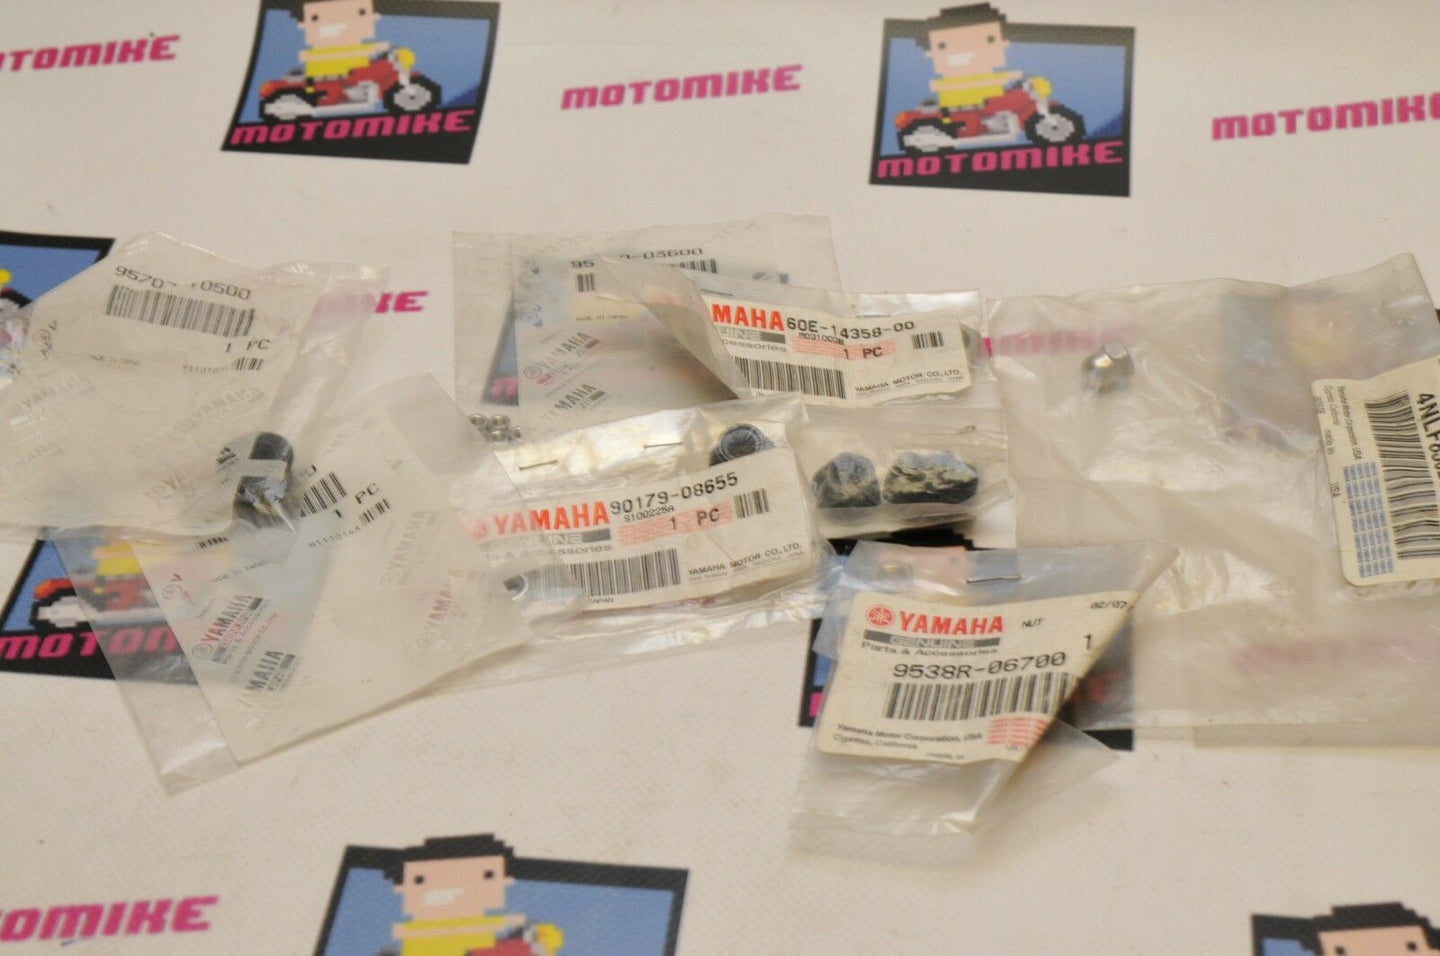 NEW NOS OEM YAMAHA LOT OF NUTS  - MULTIPLE STYLES, SEE LISTING Qty:14